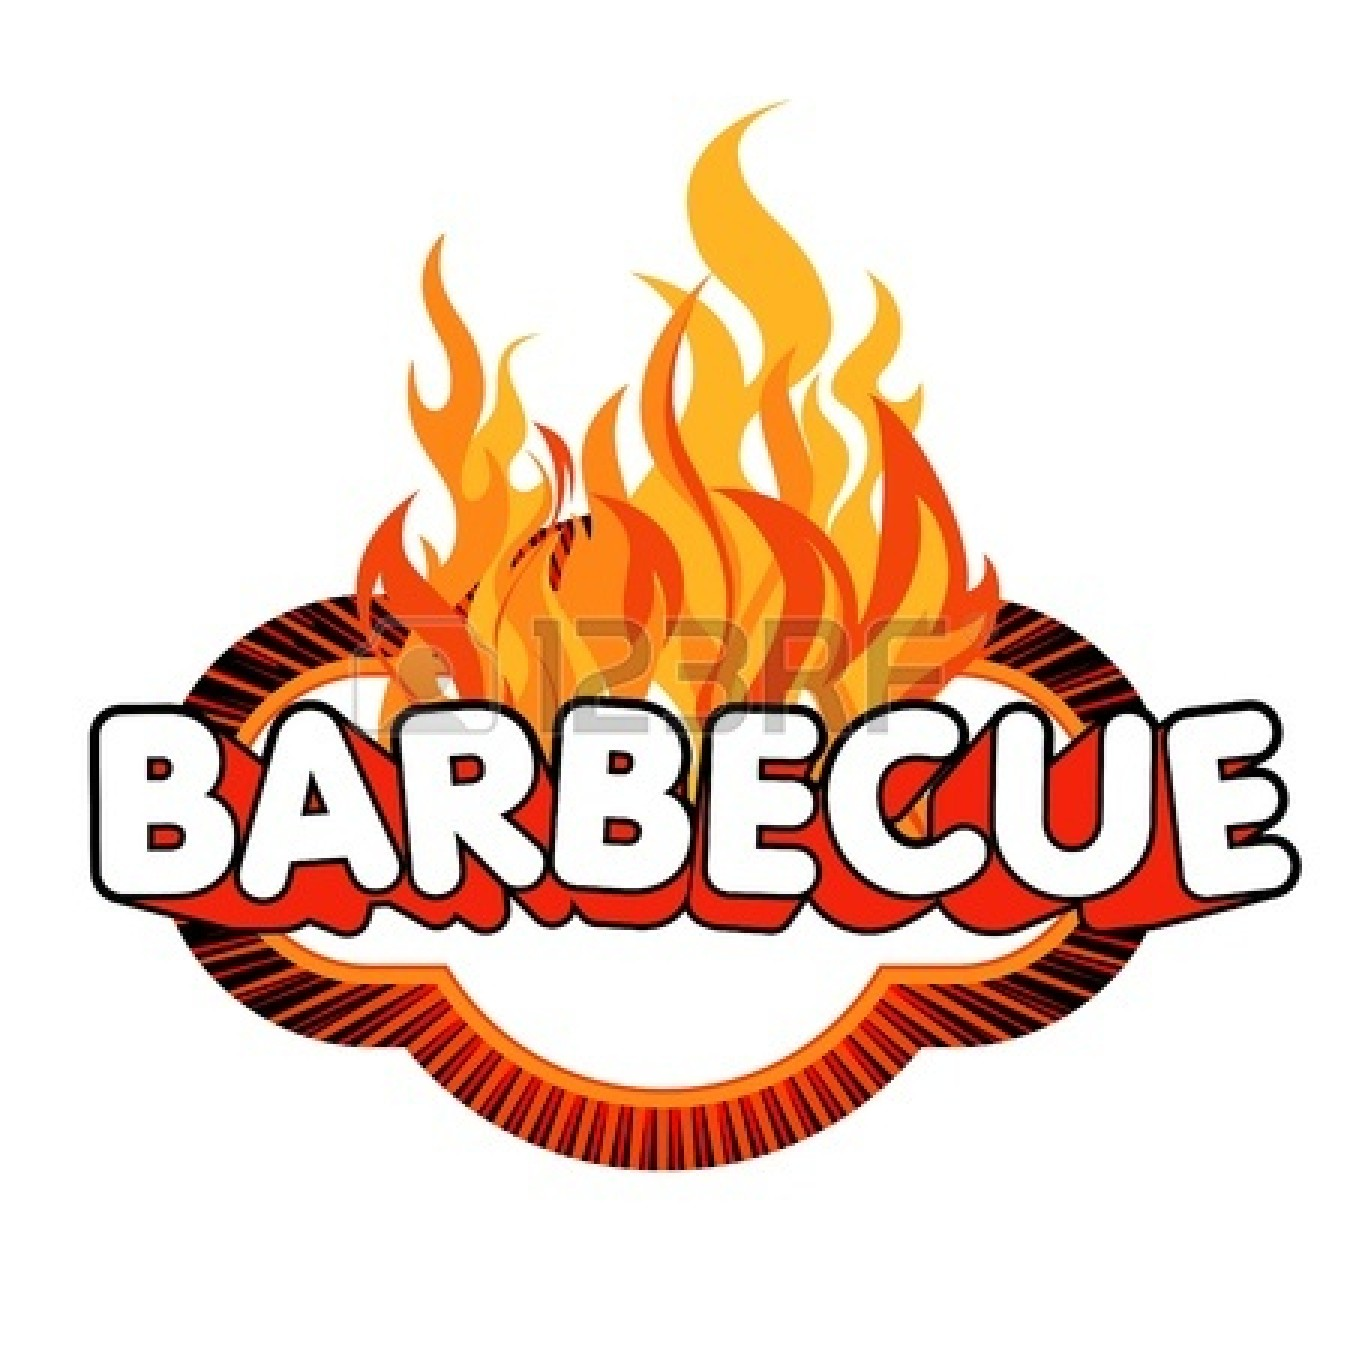 Barbecue clipart bbq chicken Free bbq%20grill%20with%20fire%20clipart Grill Panda Clipart